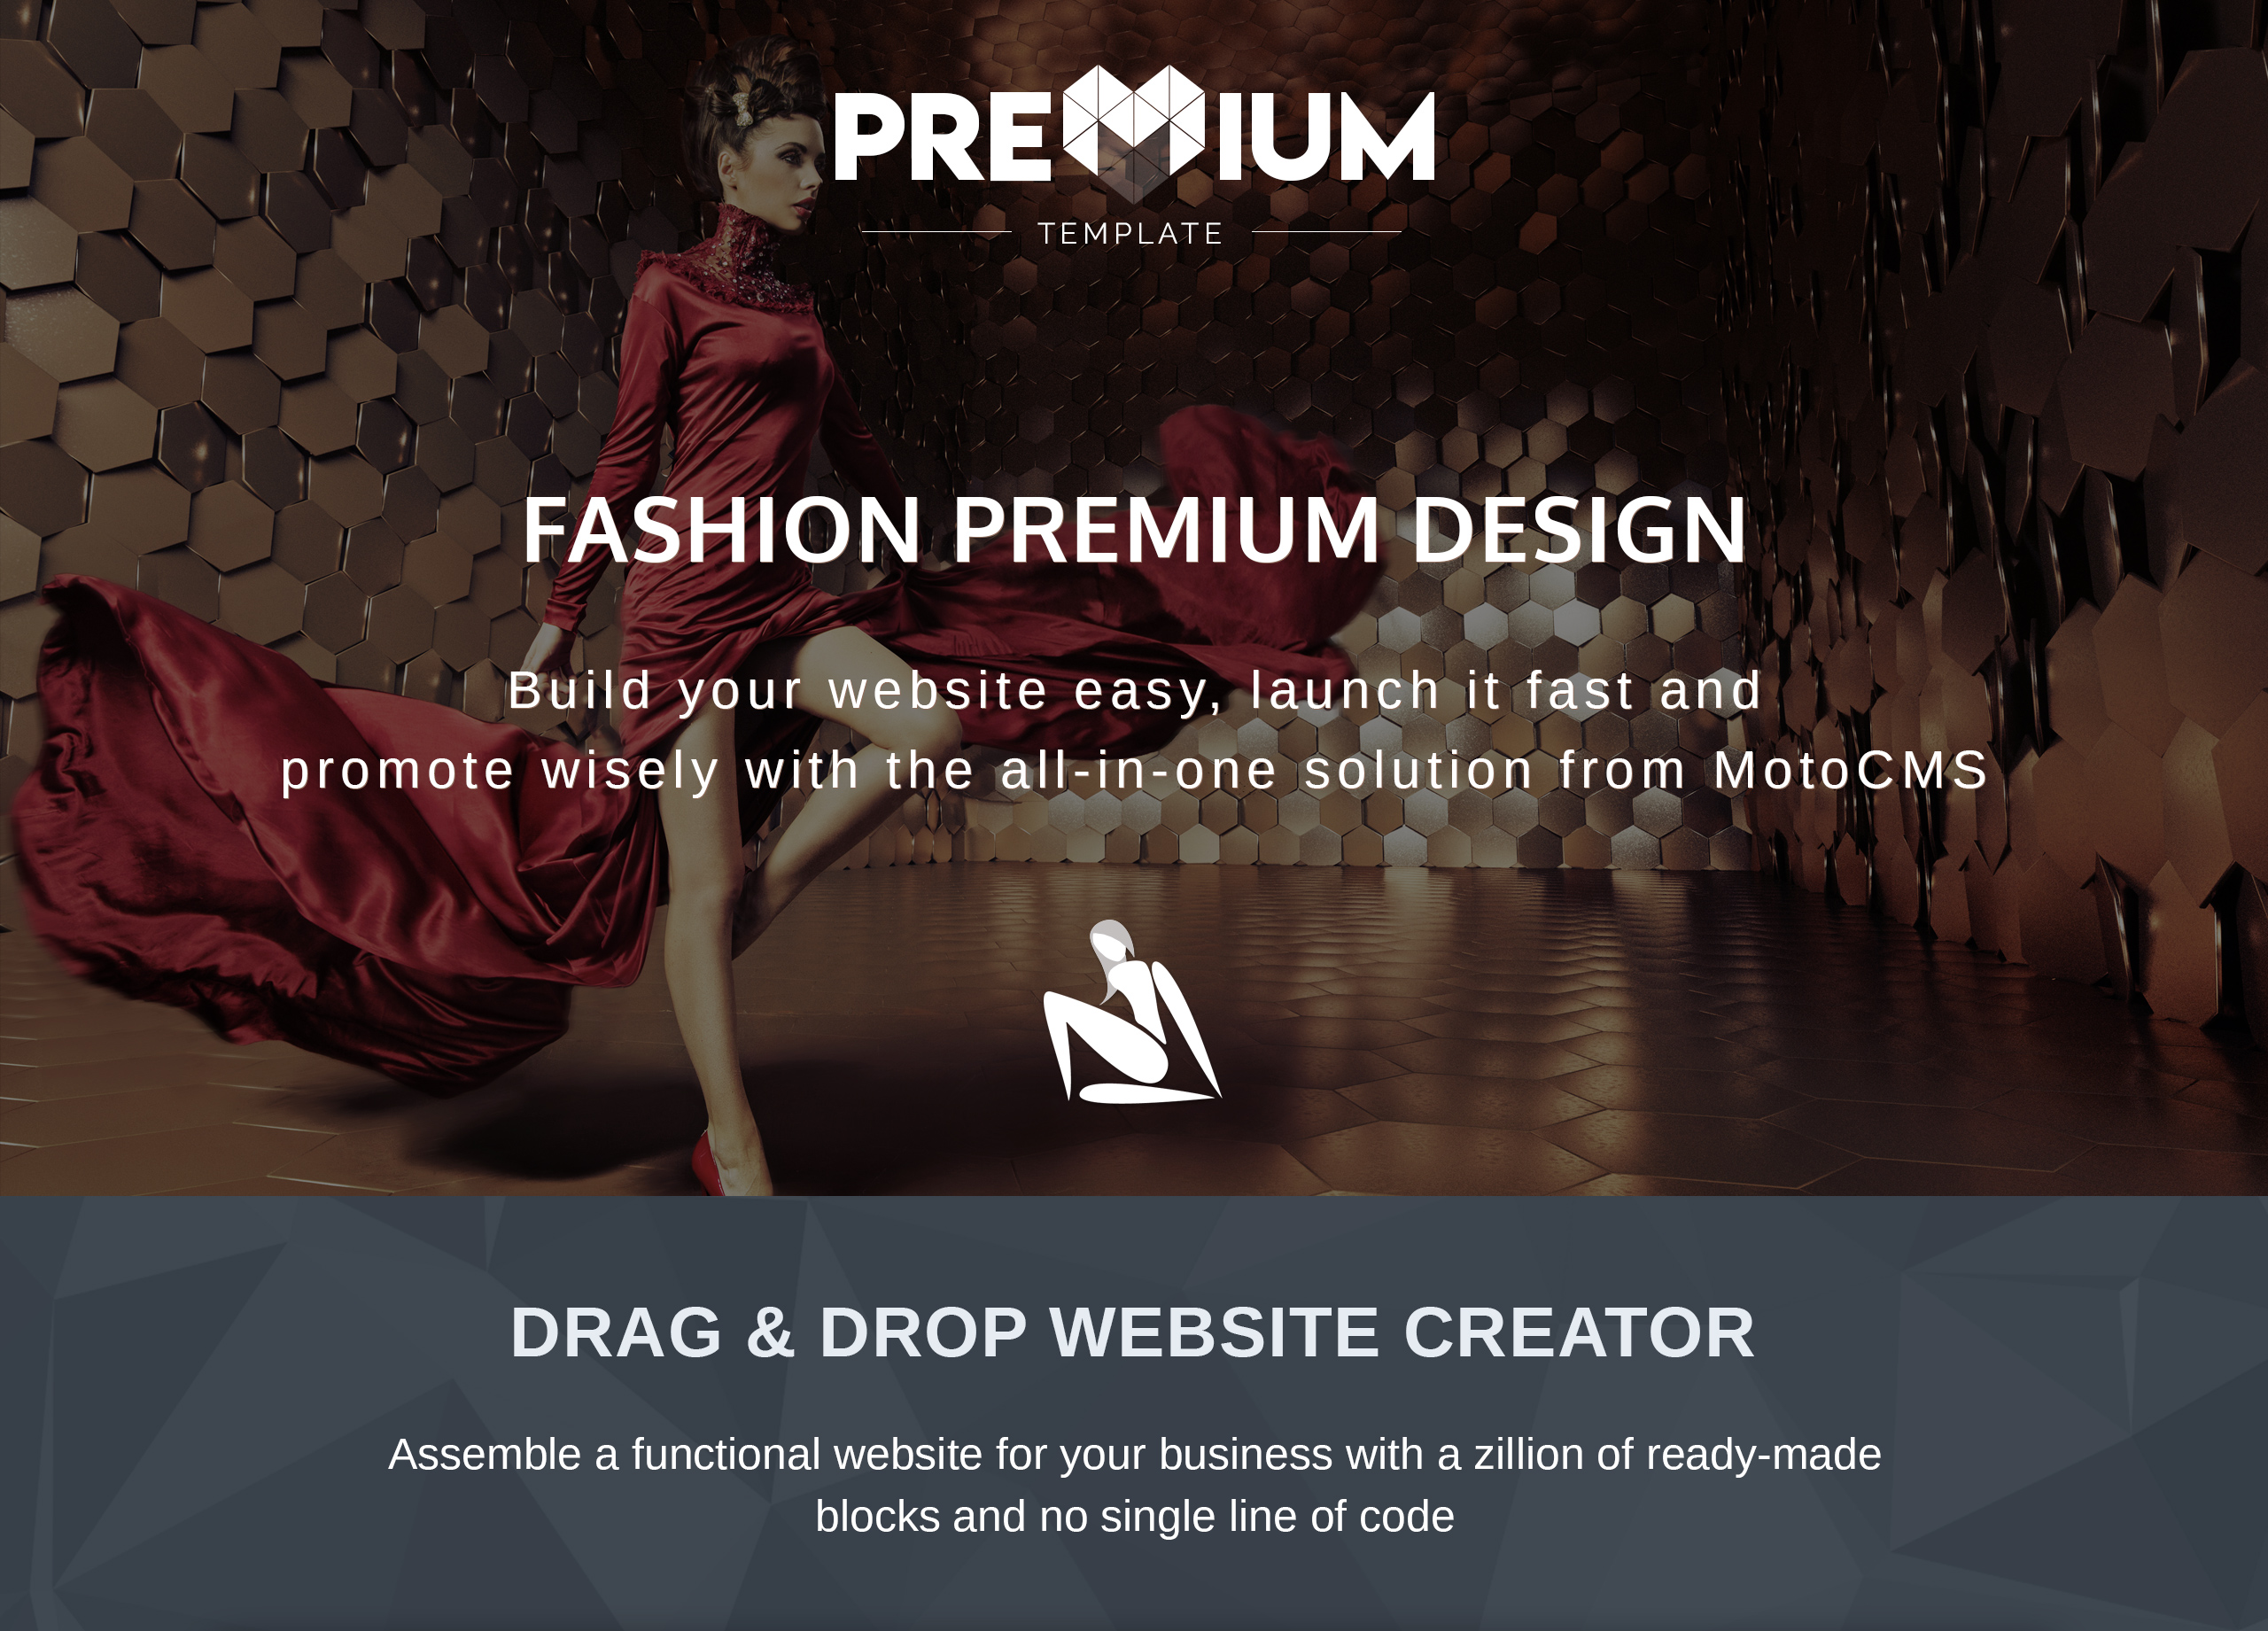 Website Design Template 73584 - week women outfit trends clothing booklook lookbookstore